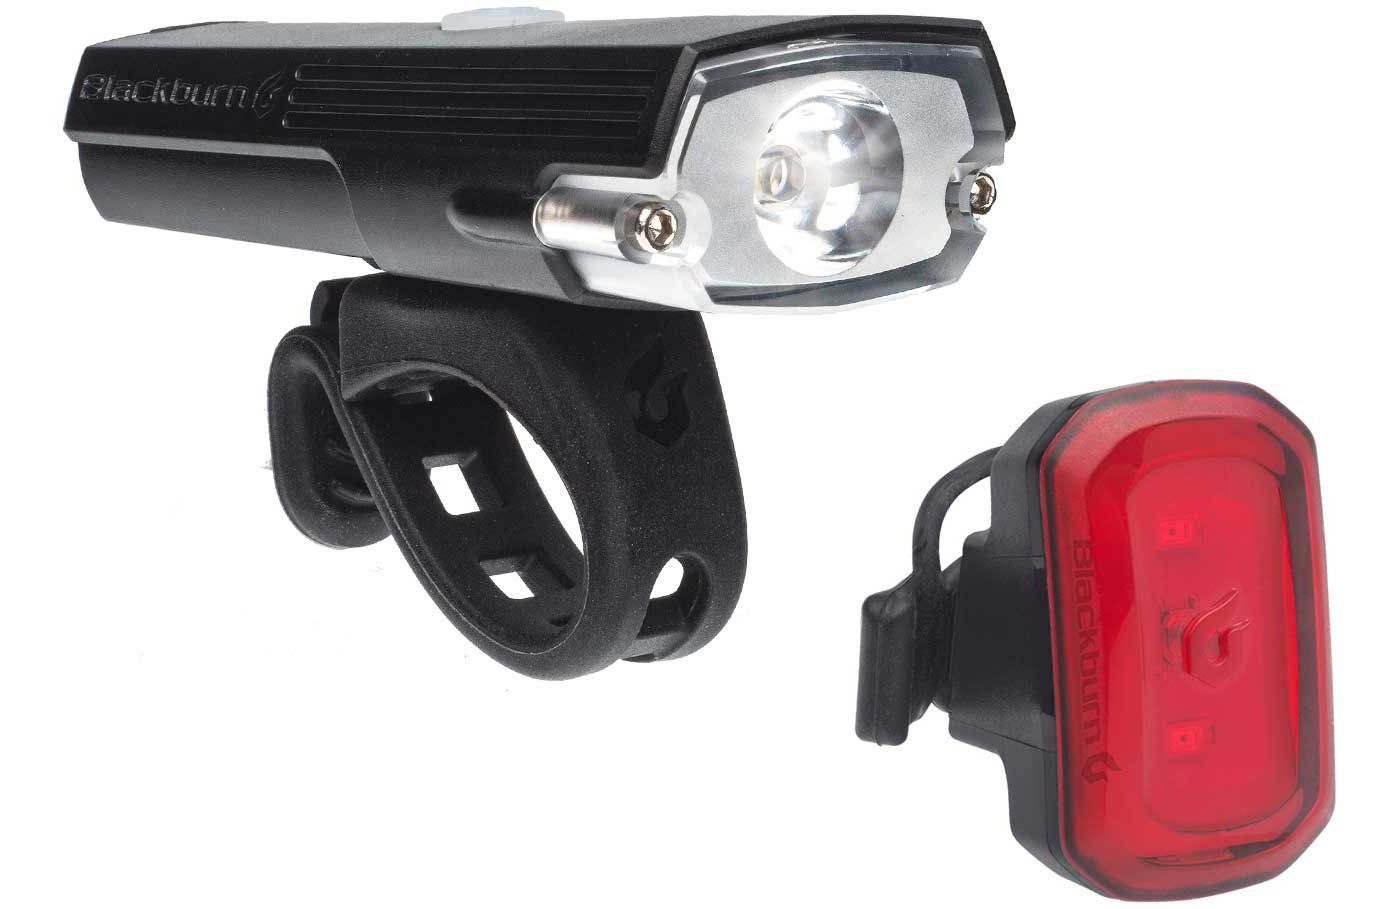 Blackburn Dayblazer 400 Front & Click USB Rear Light Combo